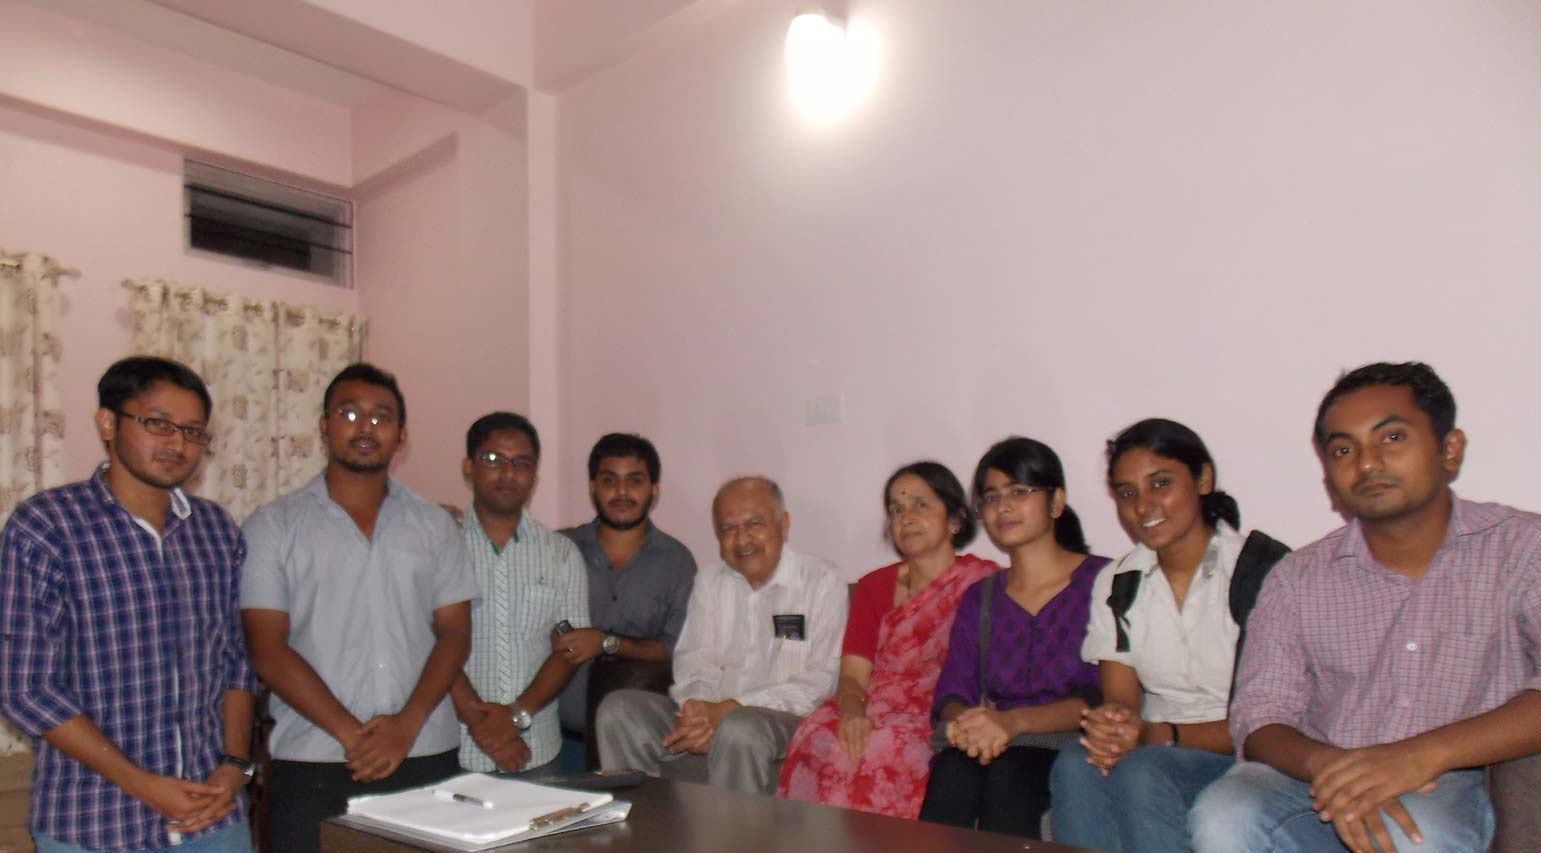 jayant-vishnu-narlikar-with-students